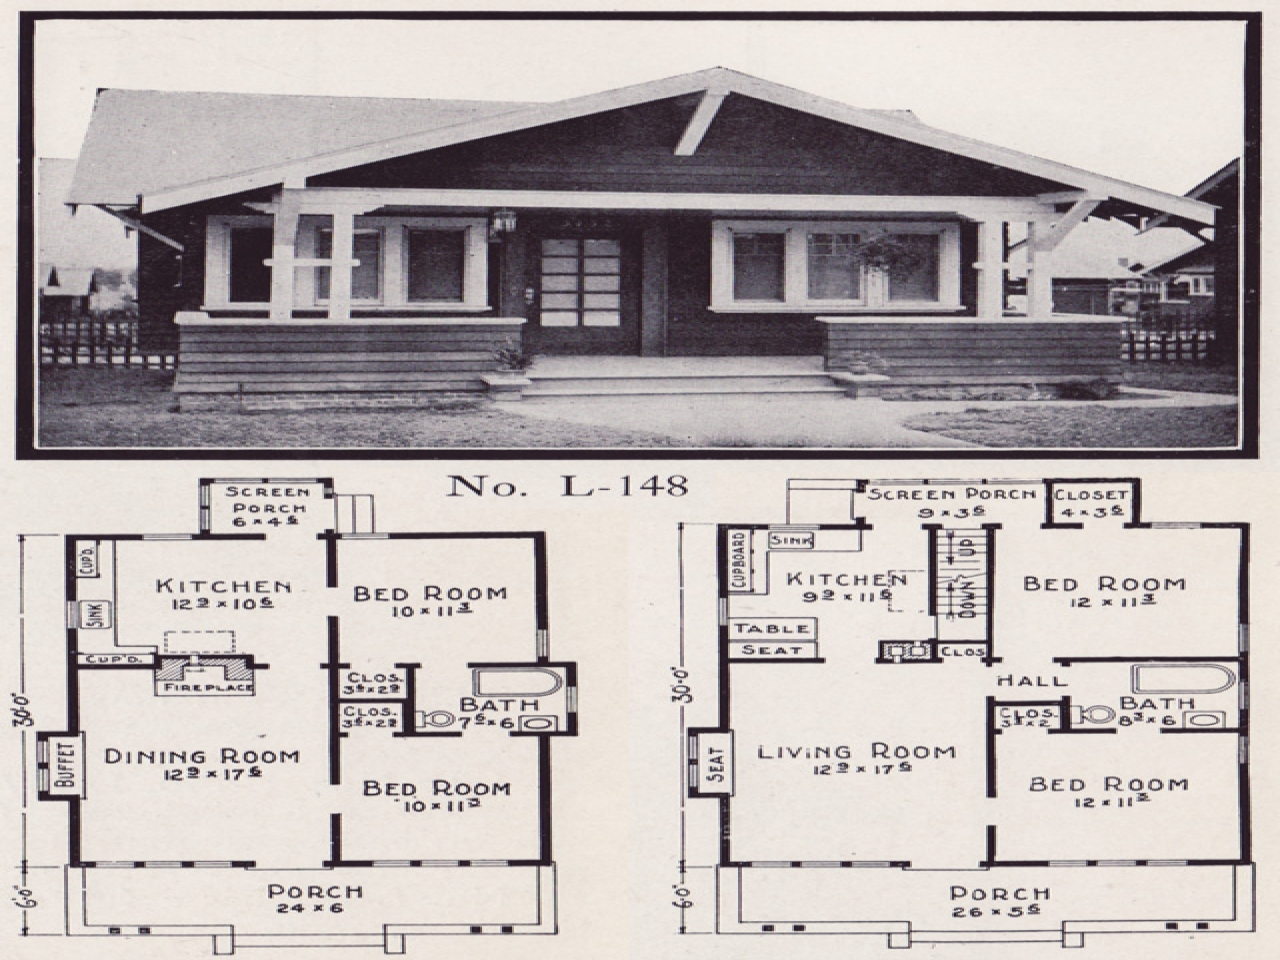 1910 craftsman bungalow kitchens 1920s craftsman bungalow for House plans craftsman style bungalow